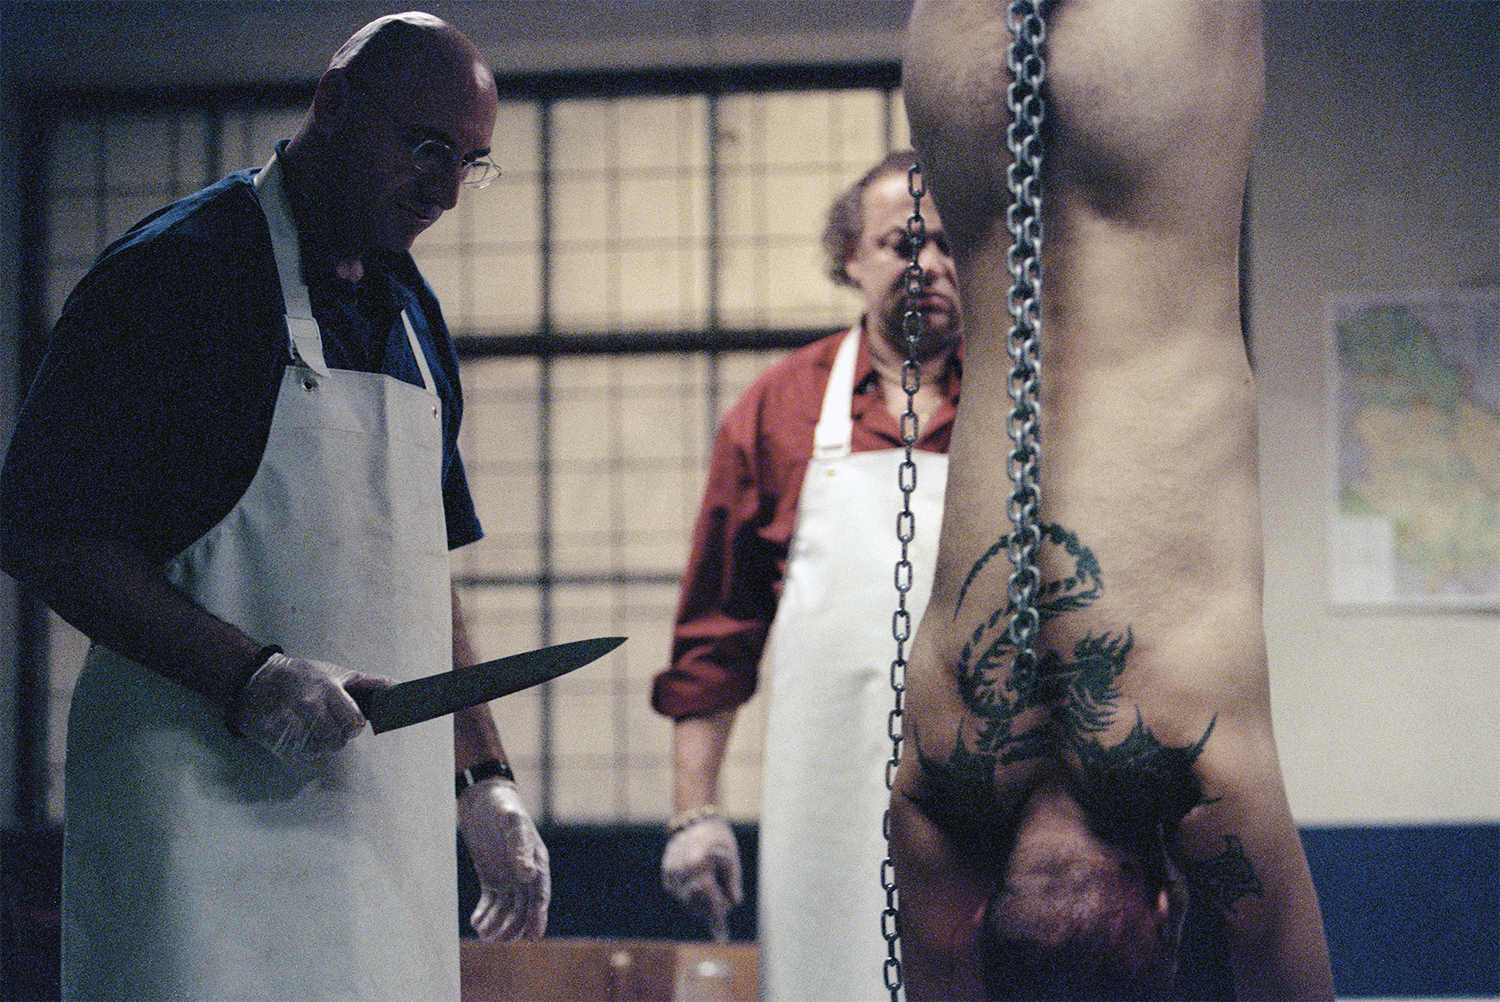 butcher with knife, man hanged upside down, in pusher 1996